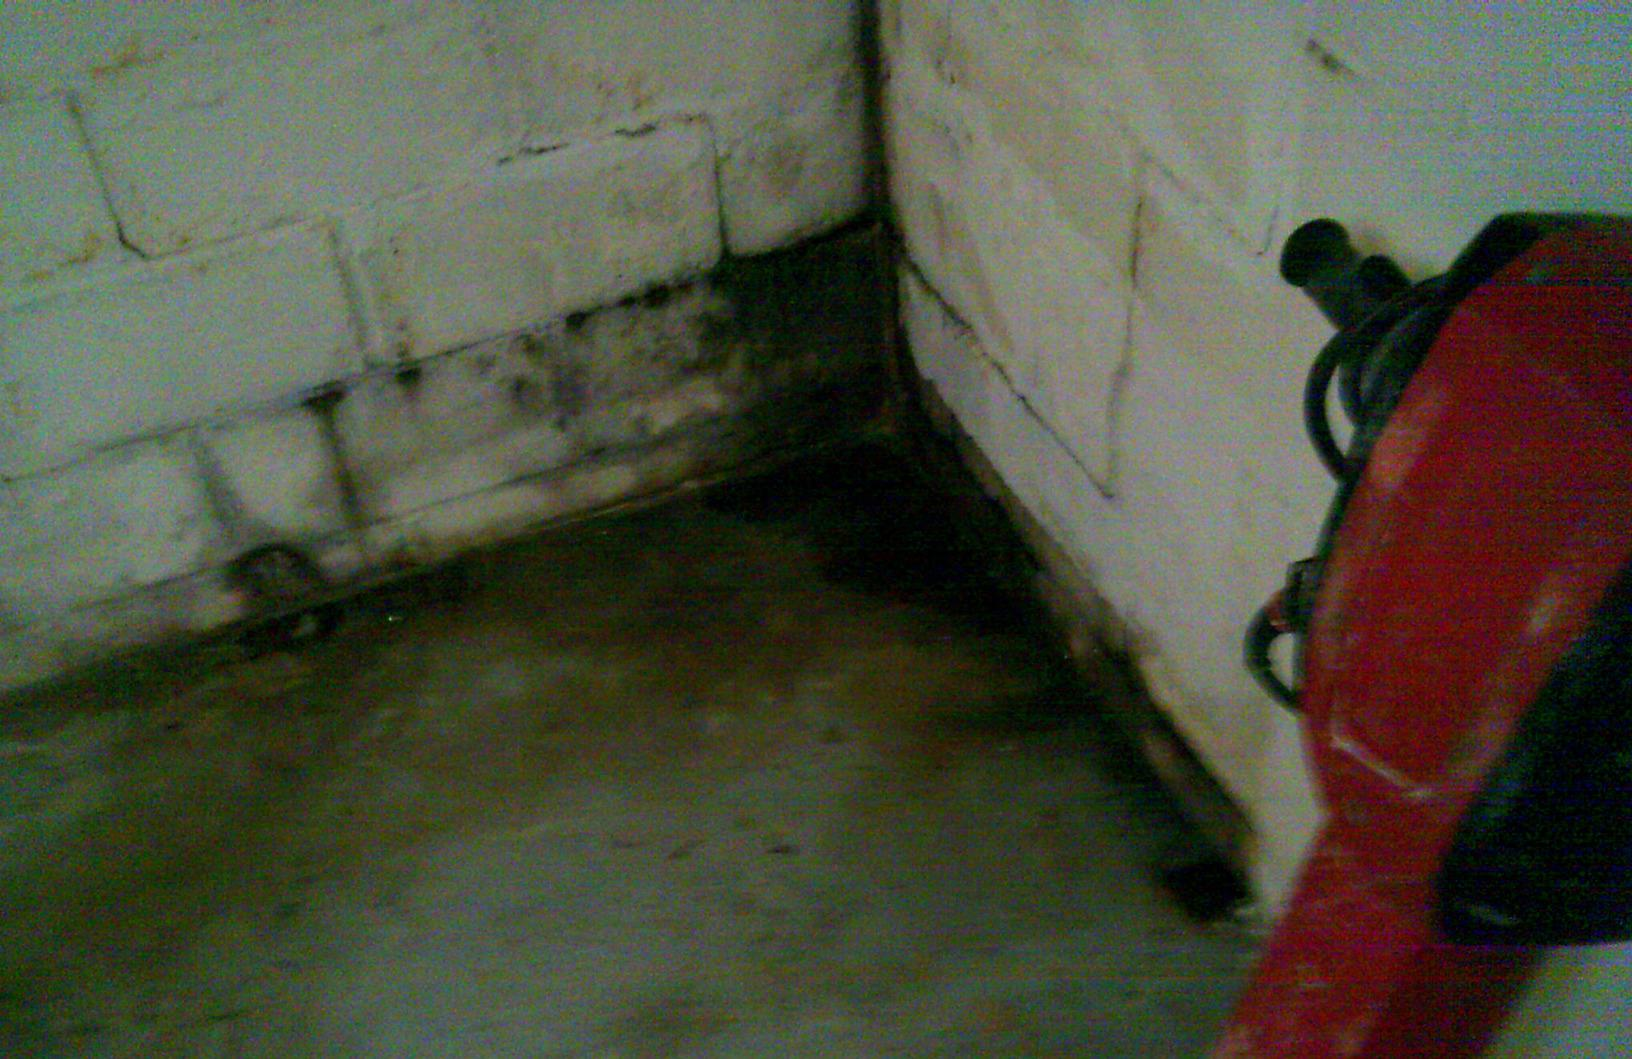 Mold growth is evident likely because of the basements consistent dampness due to repeated flooding.